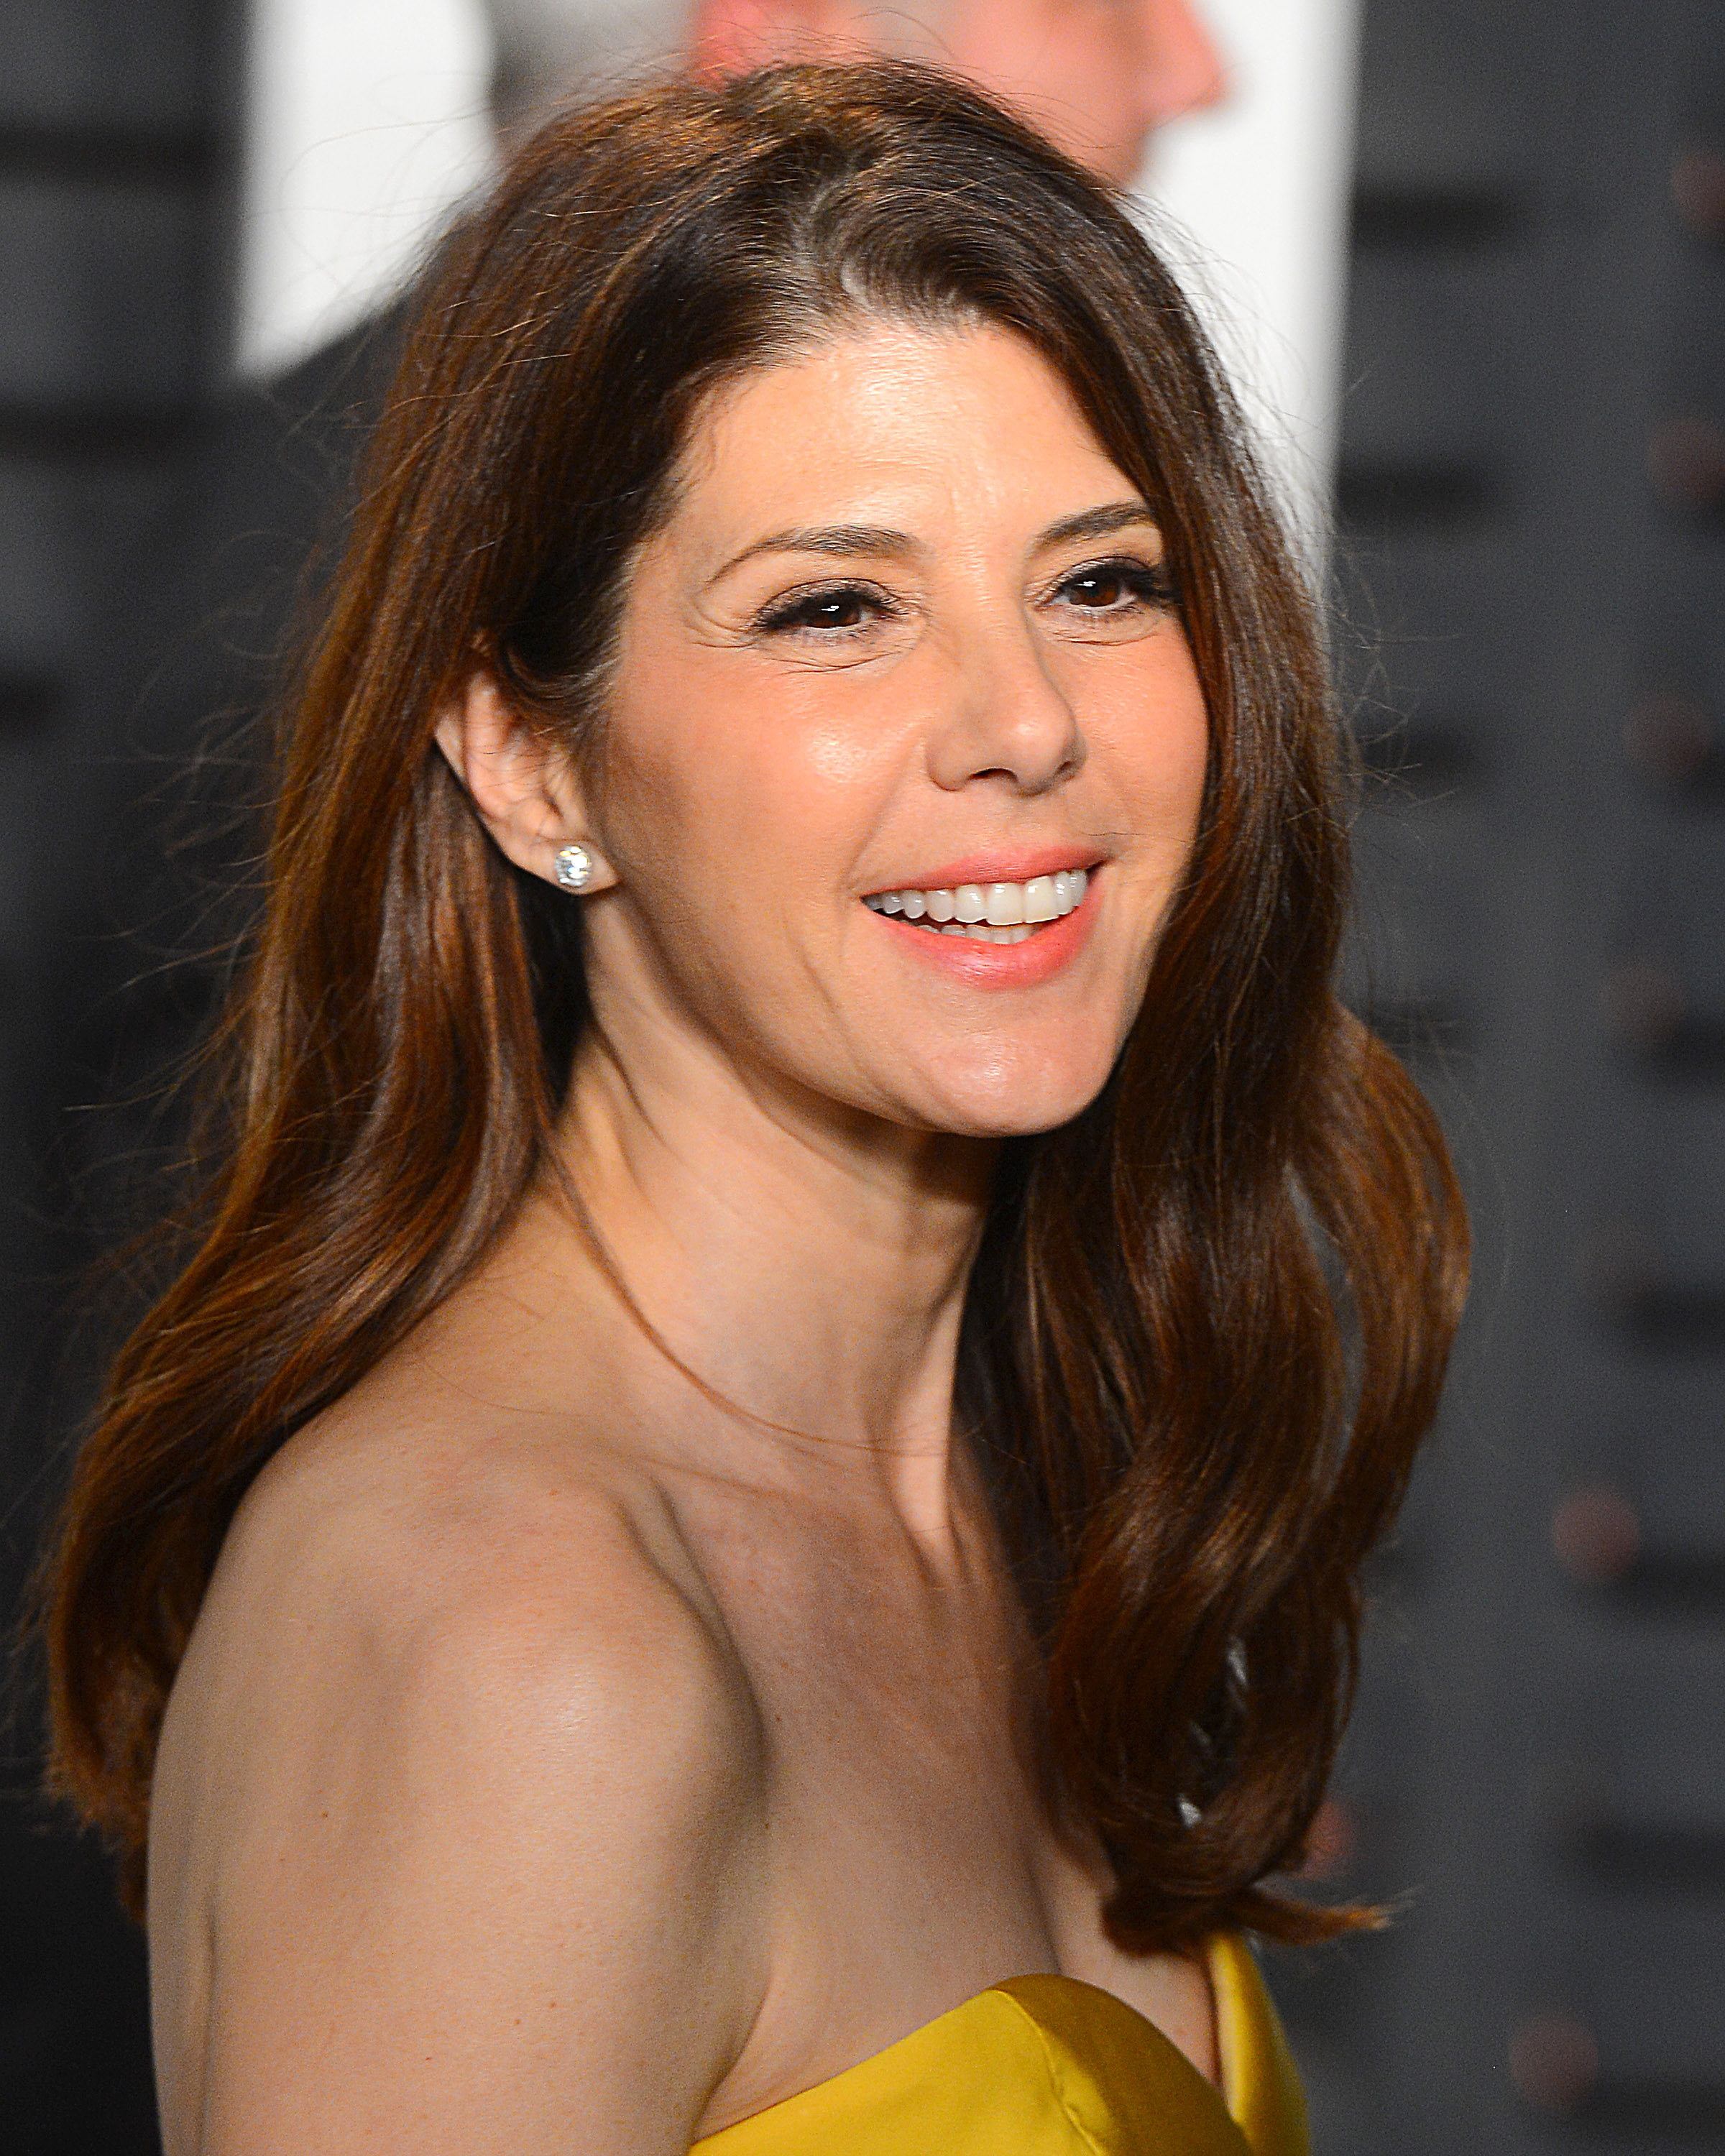 Marisa Tomei images Marisa 2016 HD wallpaper and background photos